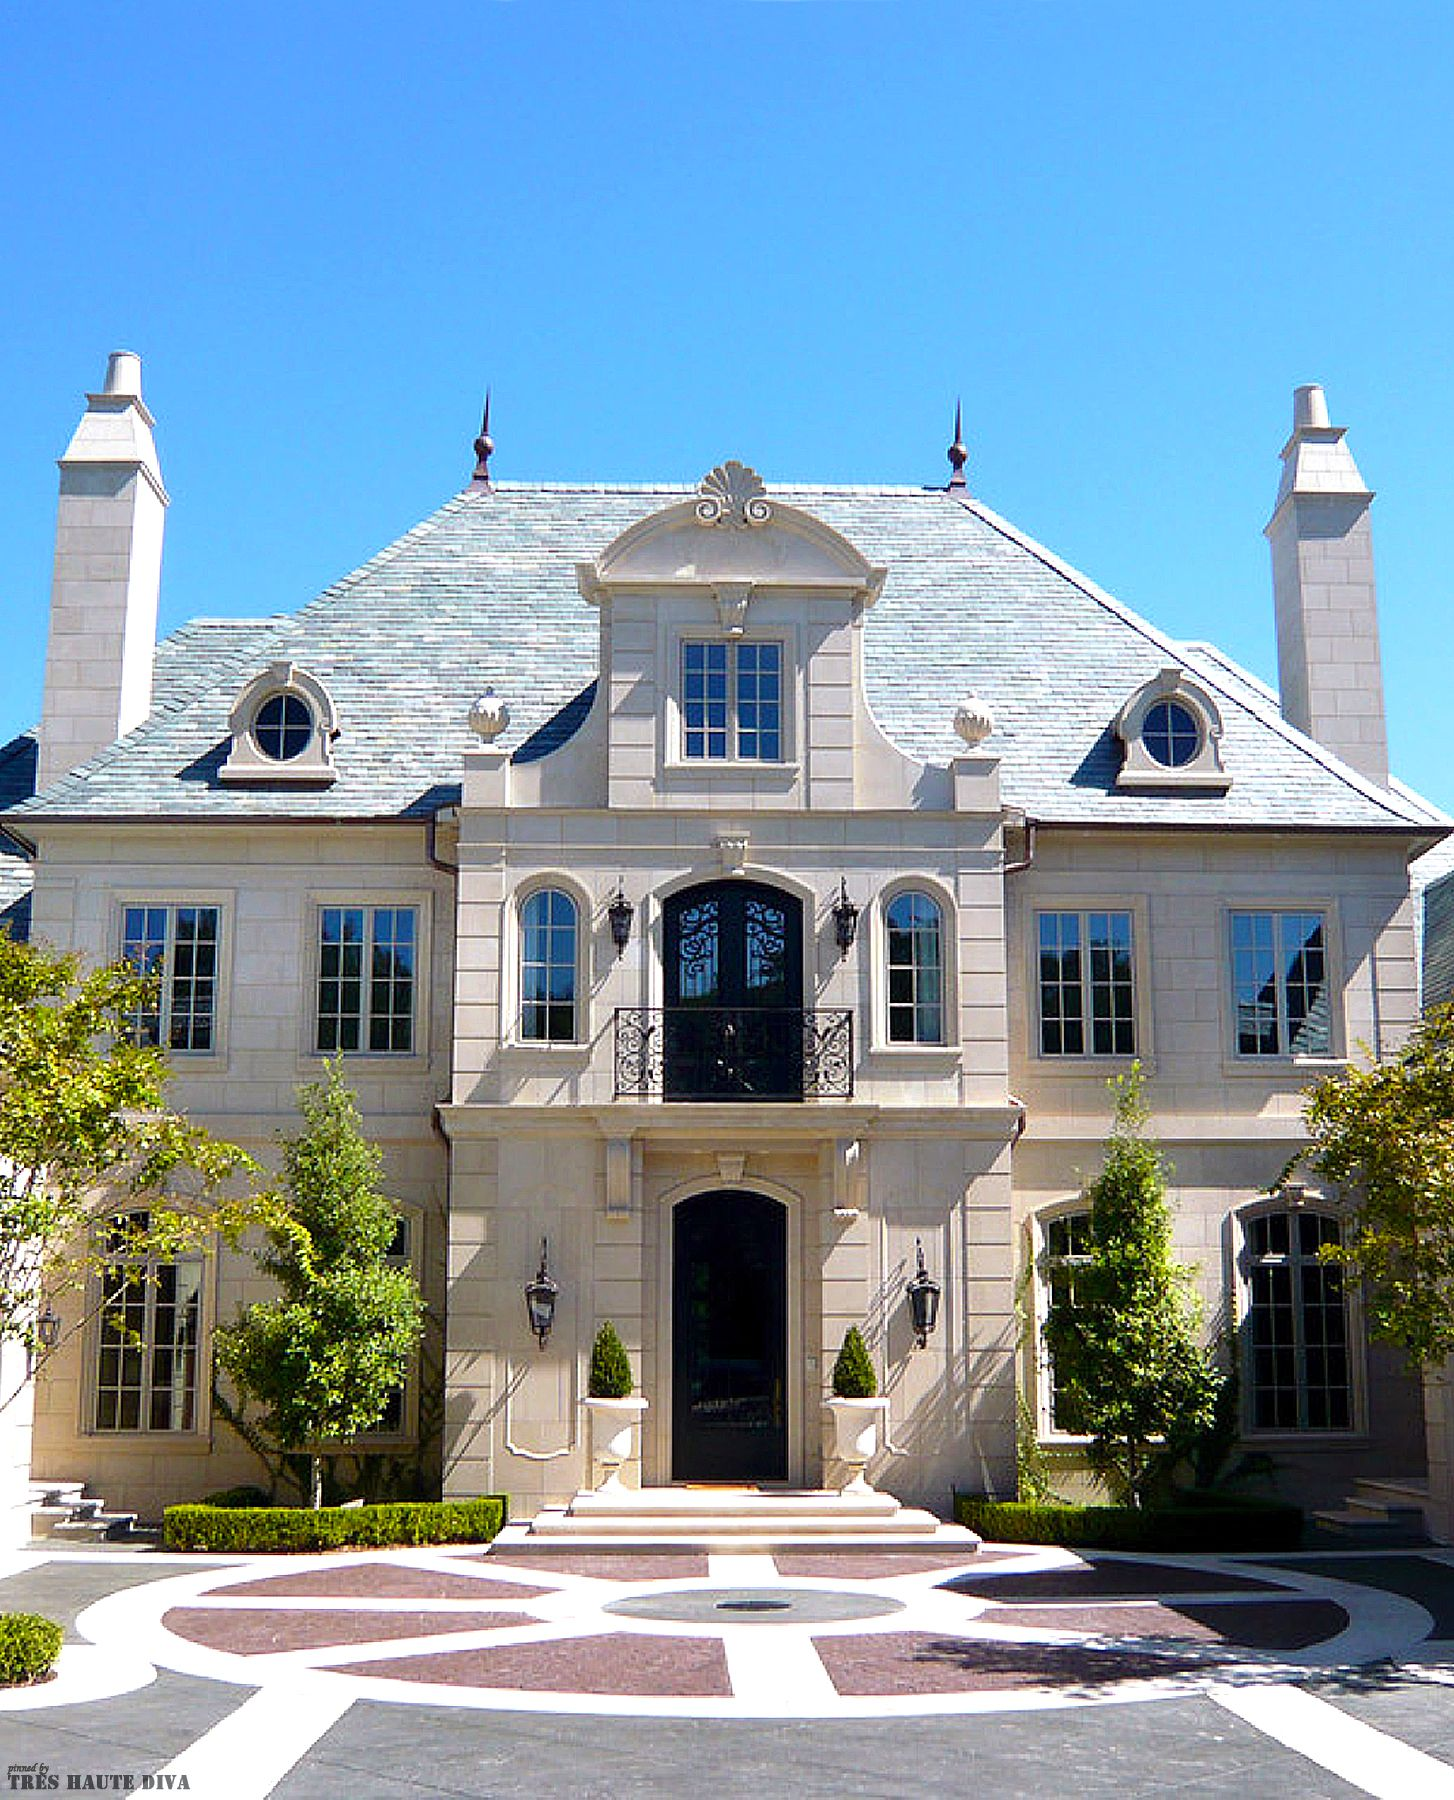 Classic french chateau style exterior architecture French country architecture residential